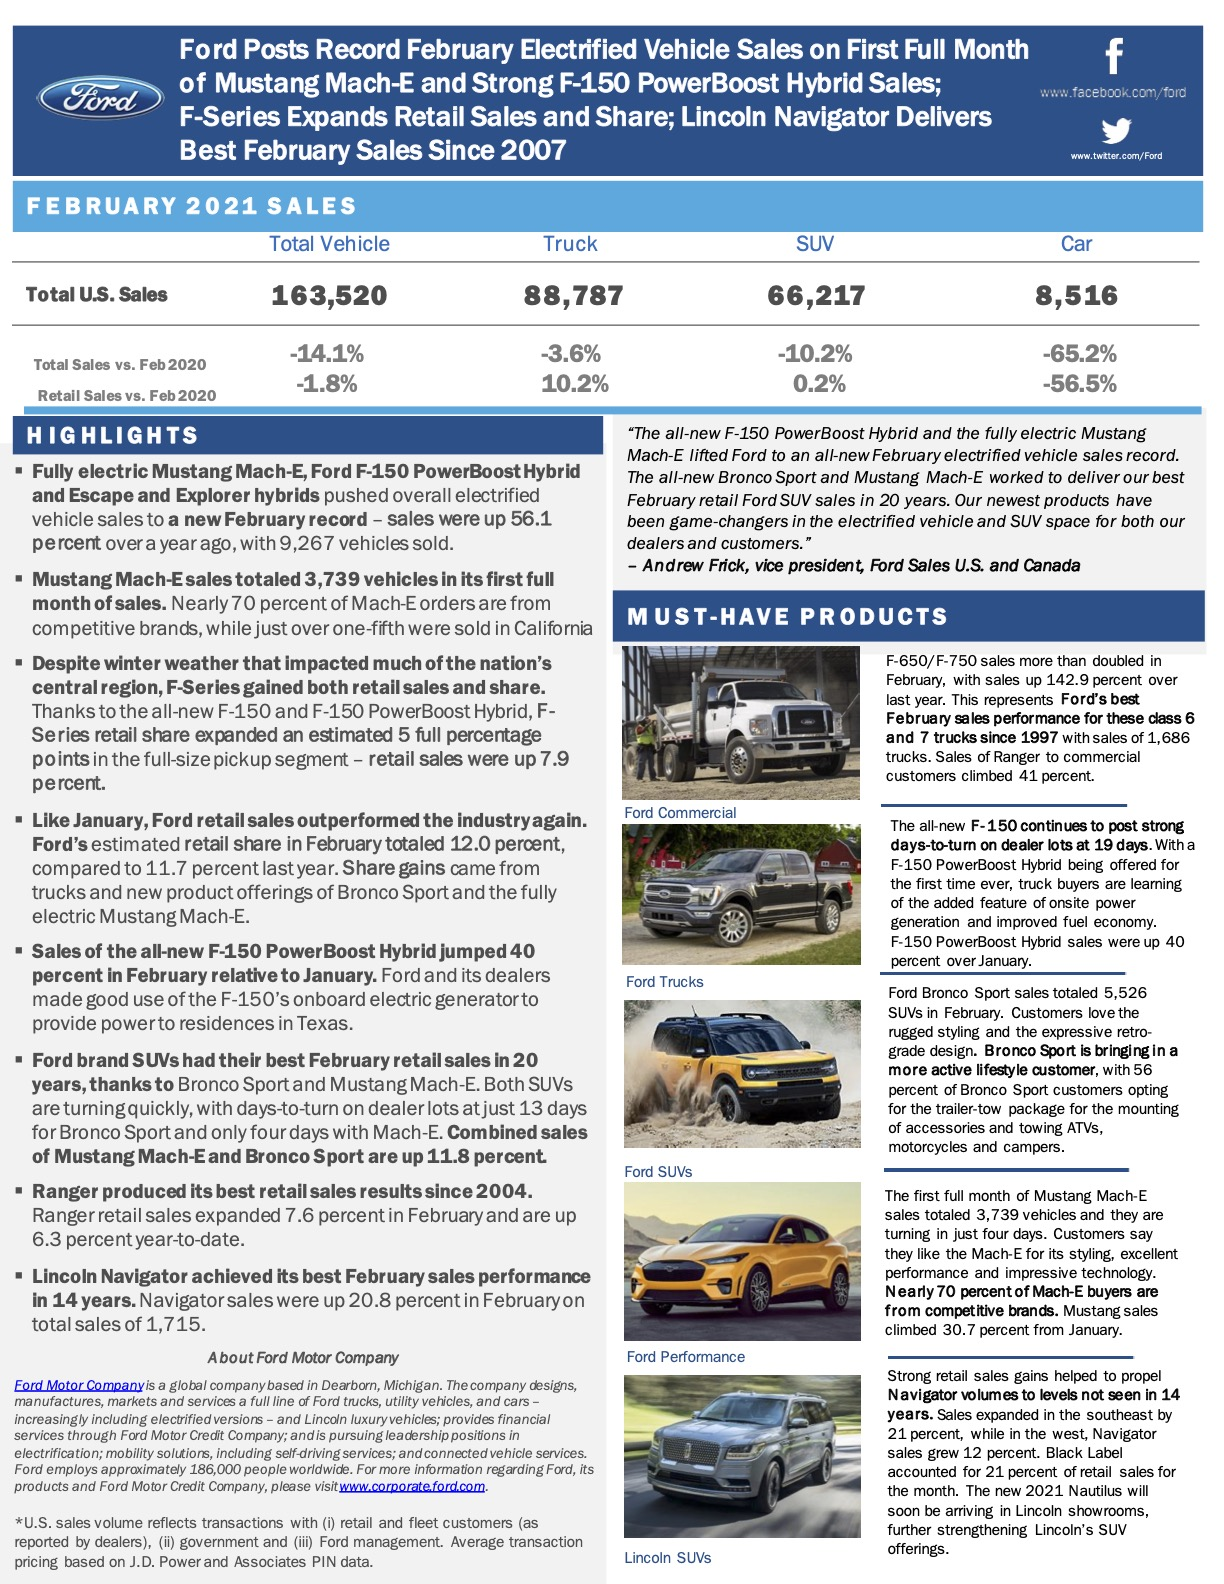 Ford-February-2021-Sales-Release-1.jpg